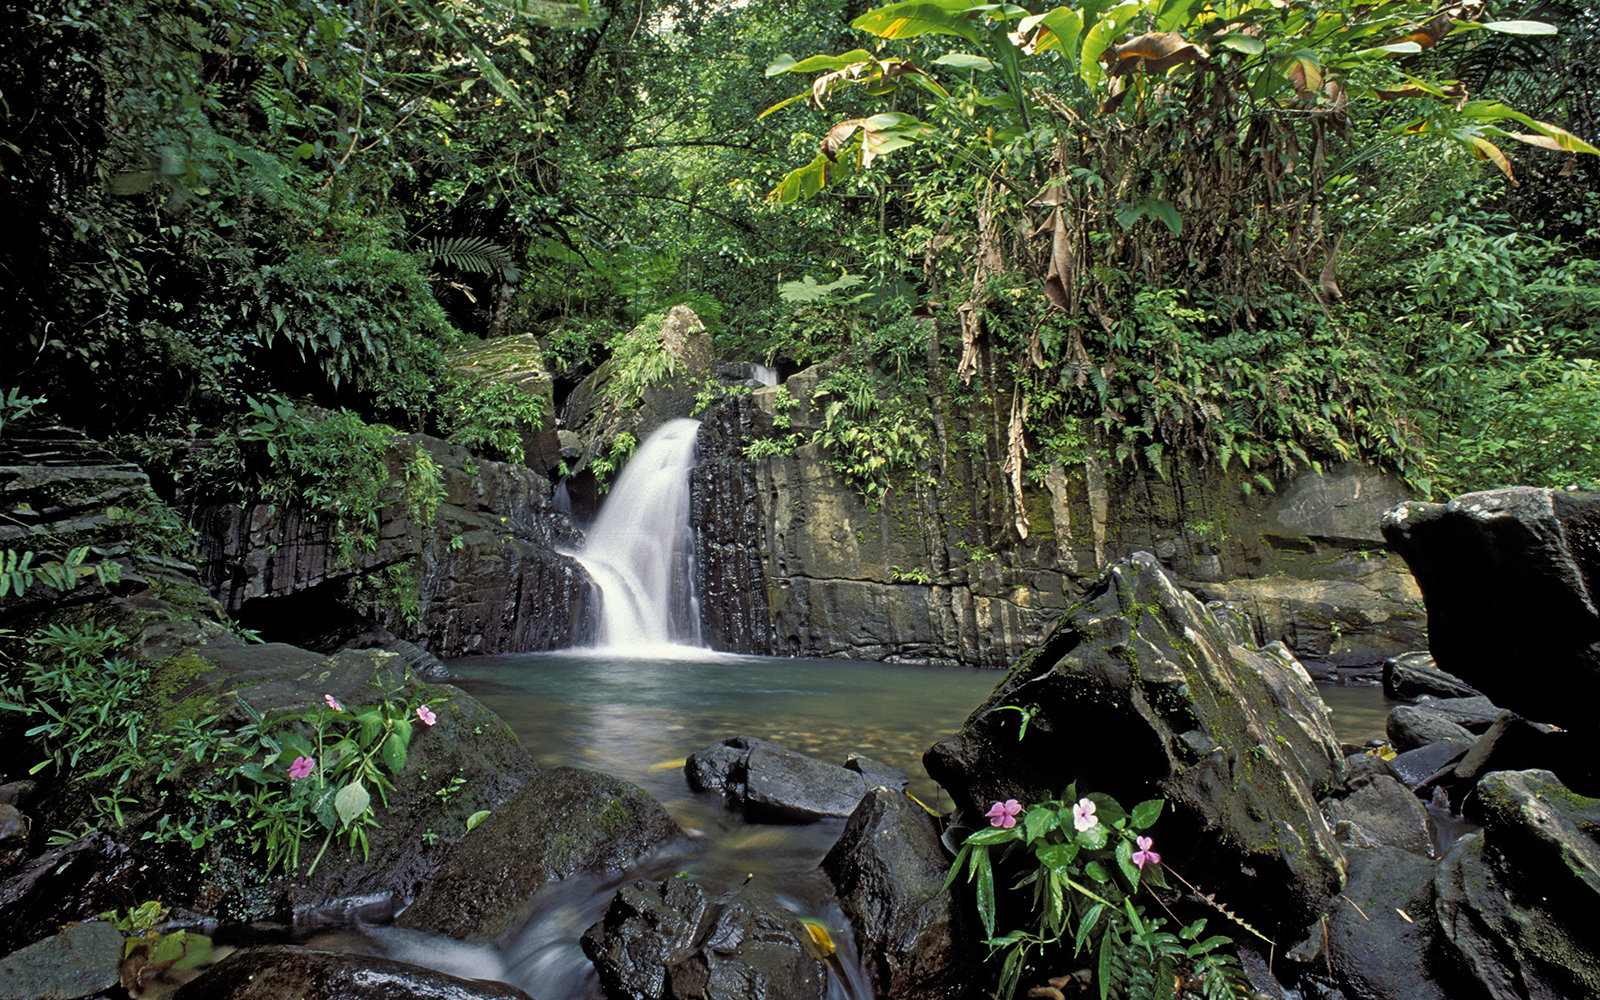 PUERTO RICO - 1994/01/01: Puerto Rico, El Yunque Rain Forest, Waterfall, Impatiens. (Photo by Wolfgang Kaehler/LightRocket via Getty Images)